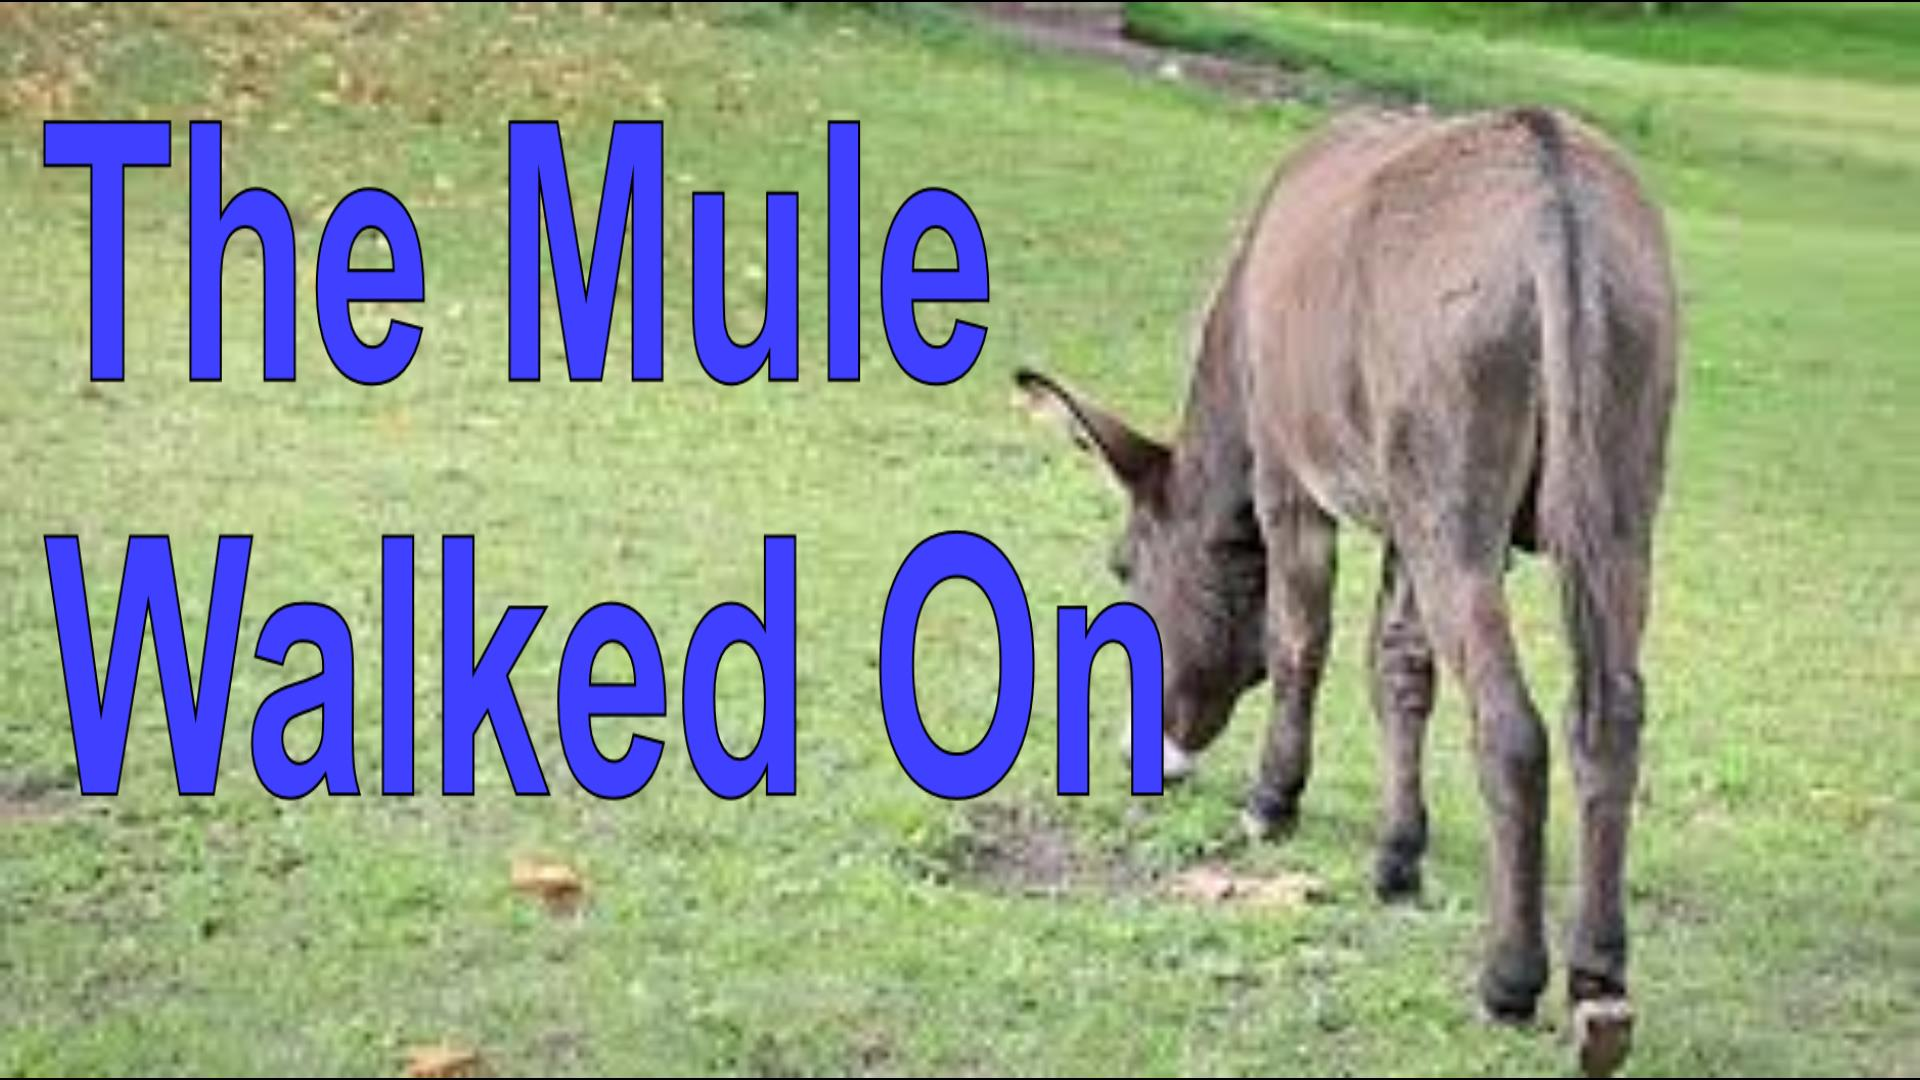 THE MULE WALKED ON